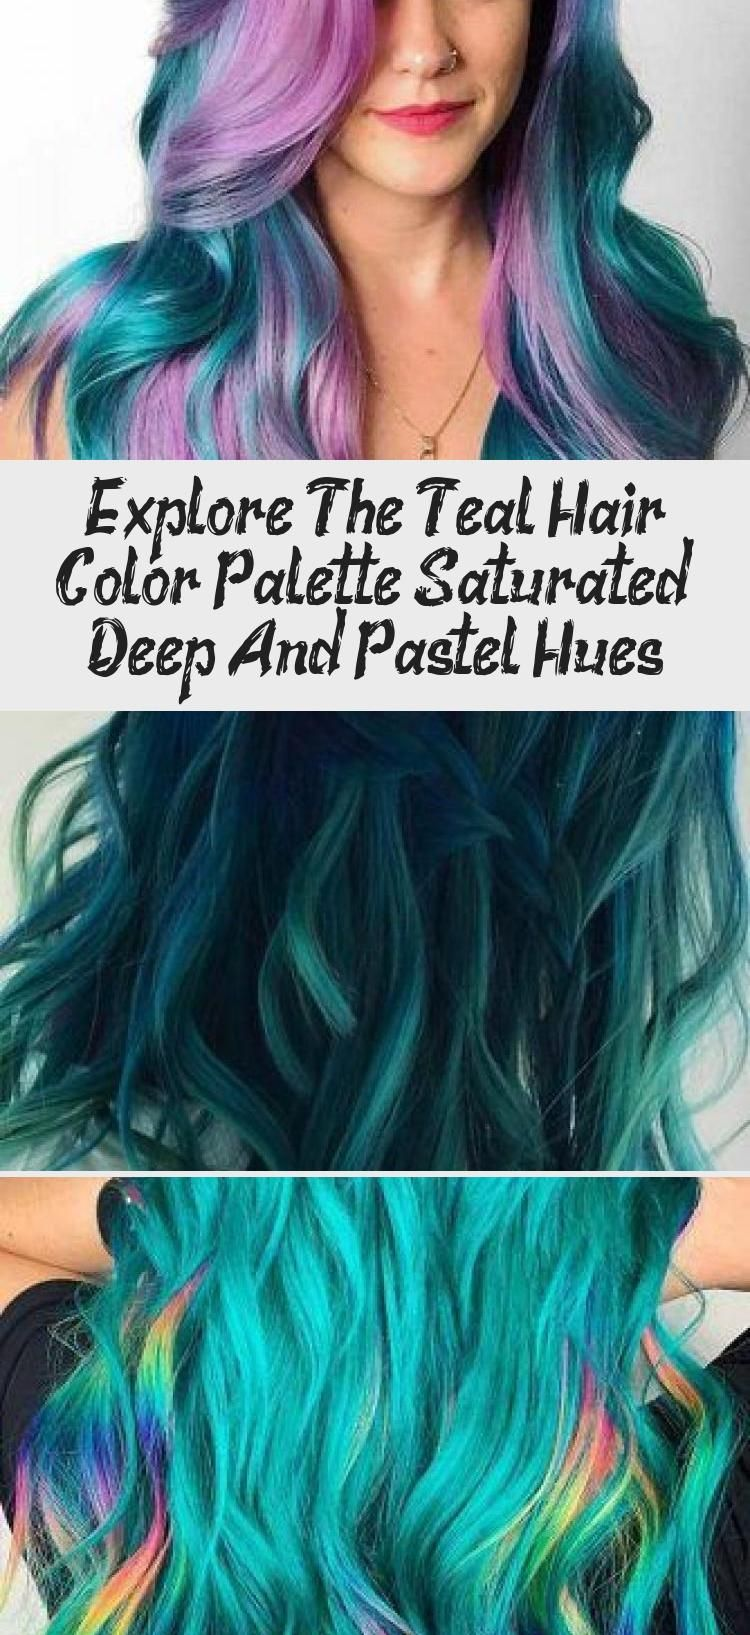 Explore The Teal Hair Color Palette Saturated Deep And Pastel Hues Hair Style Teal Hair Teal Hair Color Hair Color